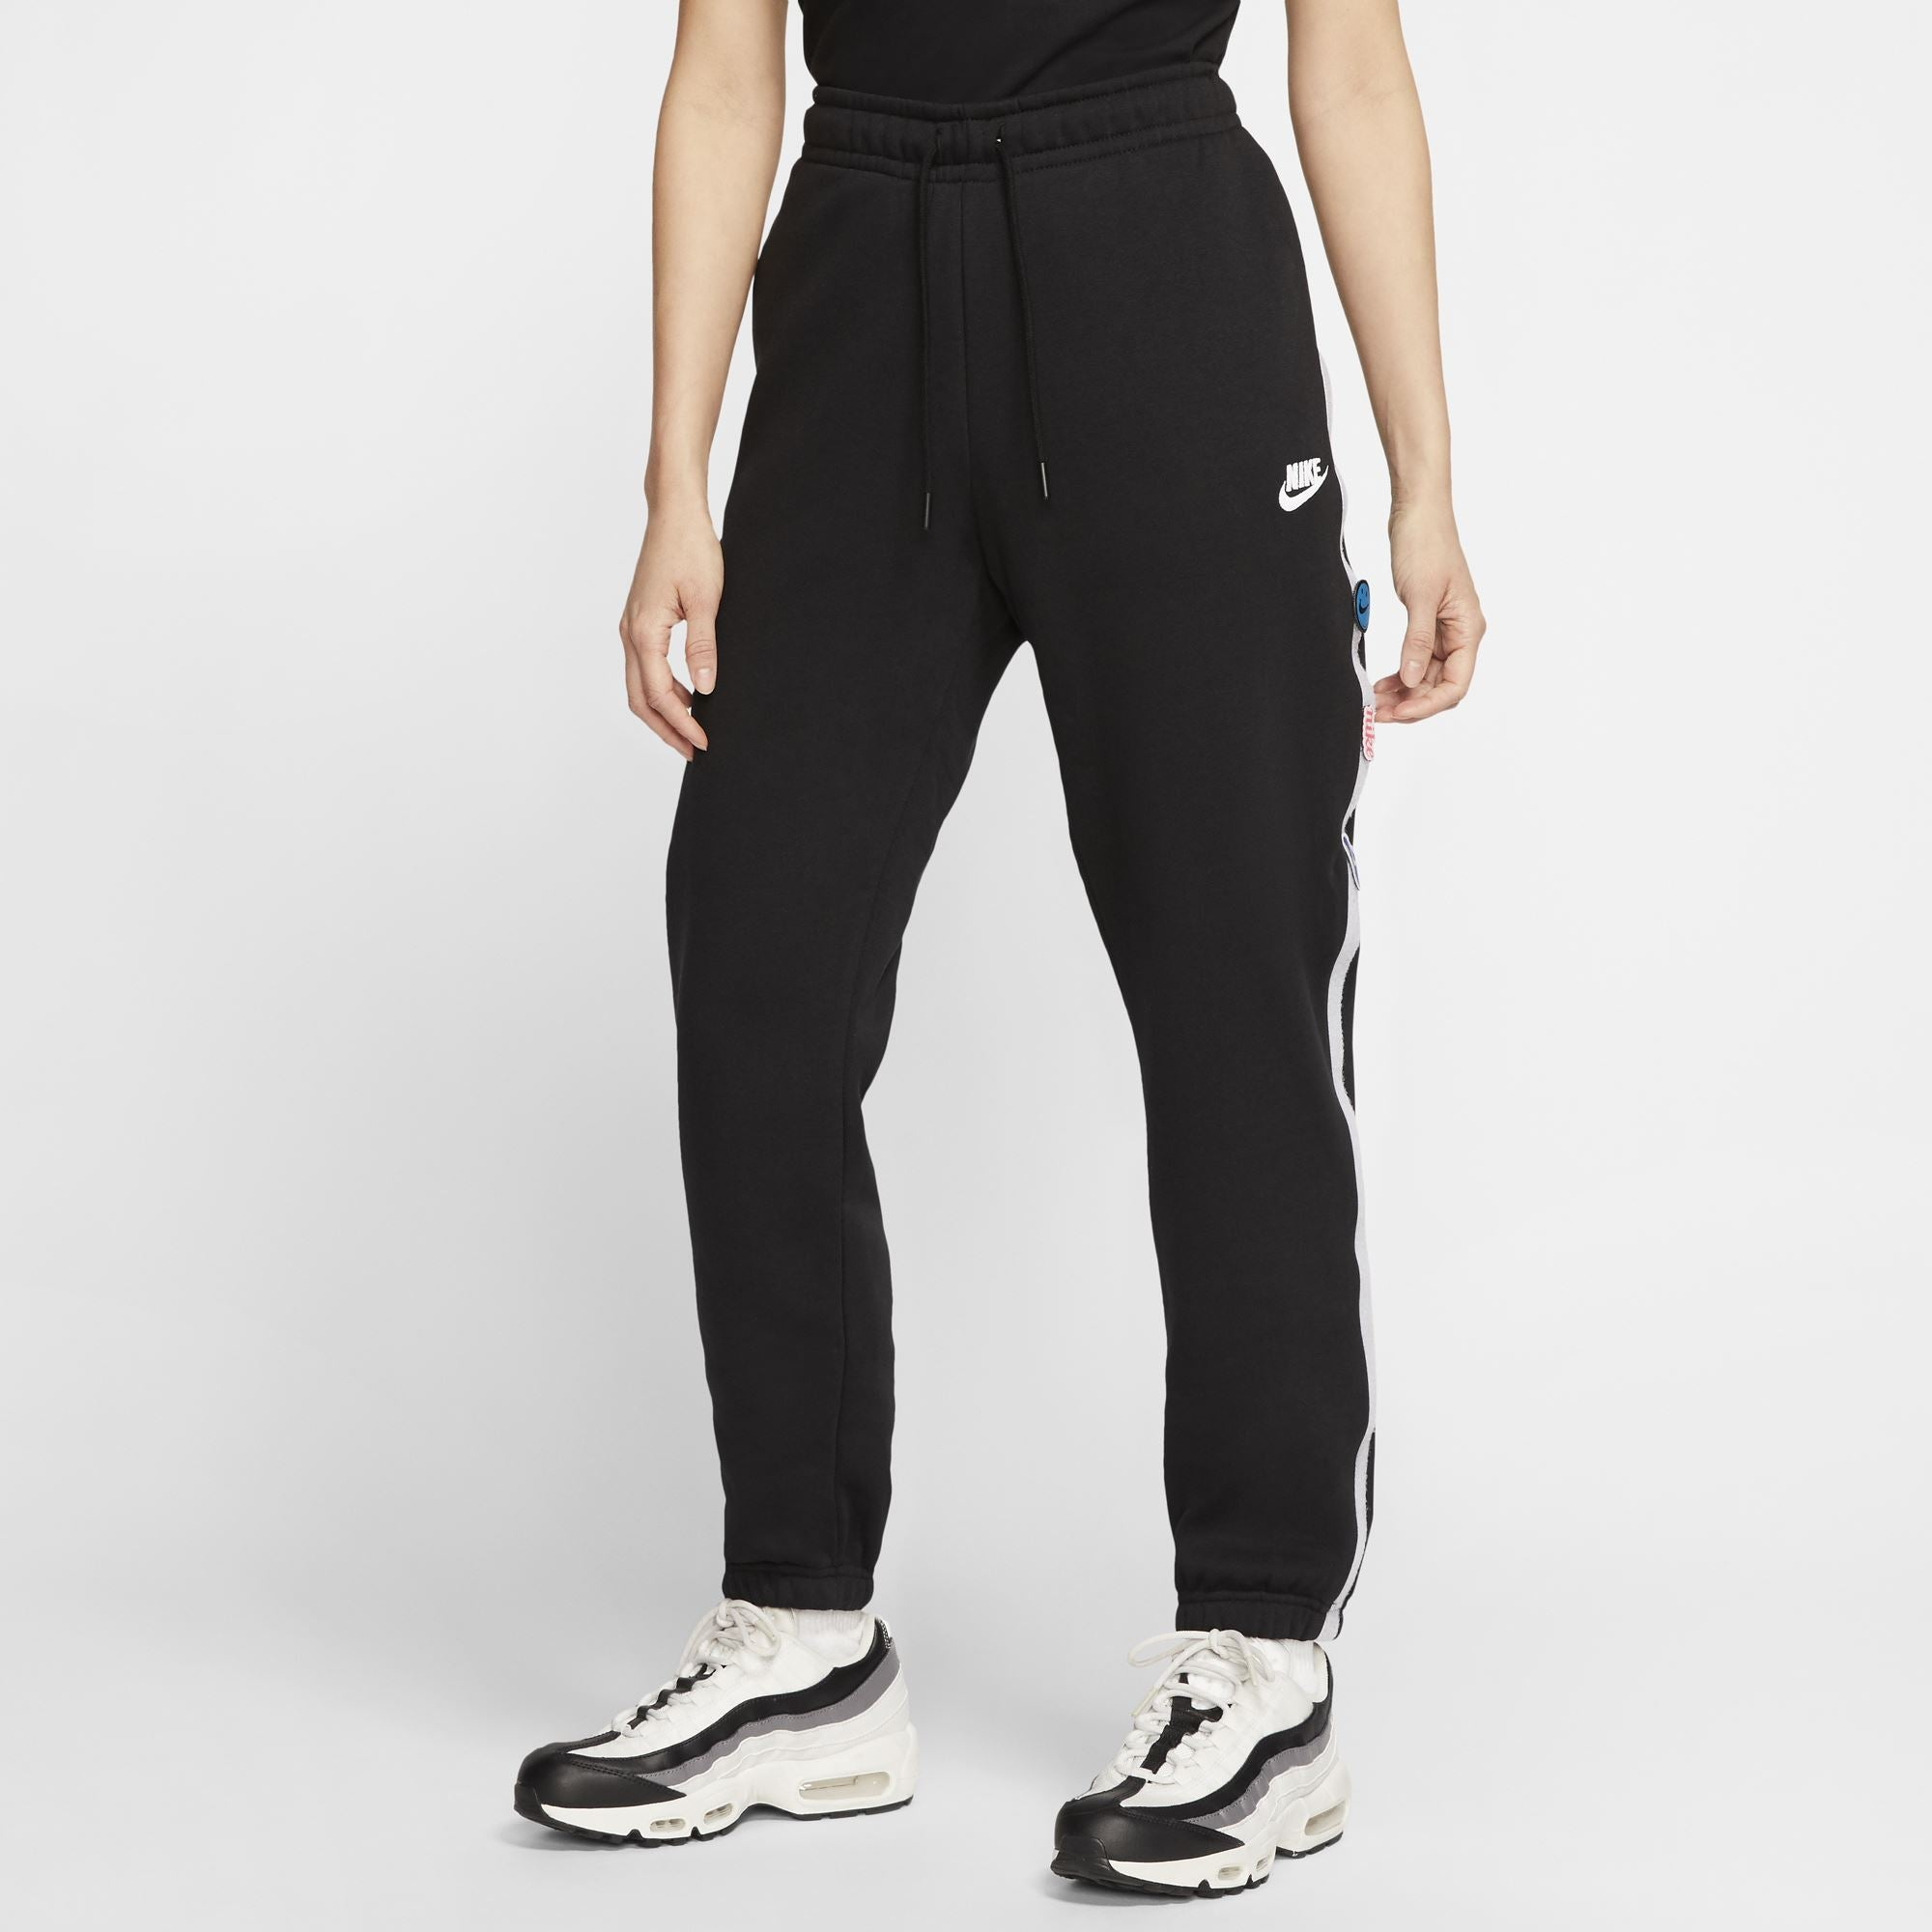 Nike Womens Sportswear Fleece Pants - Black SP-ApparelFleece-Womens Nike